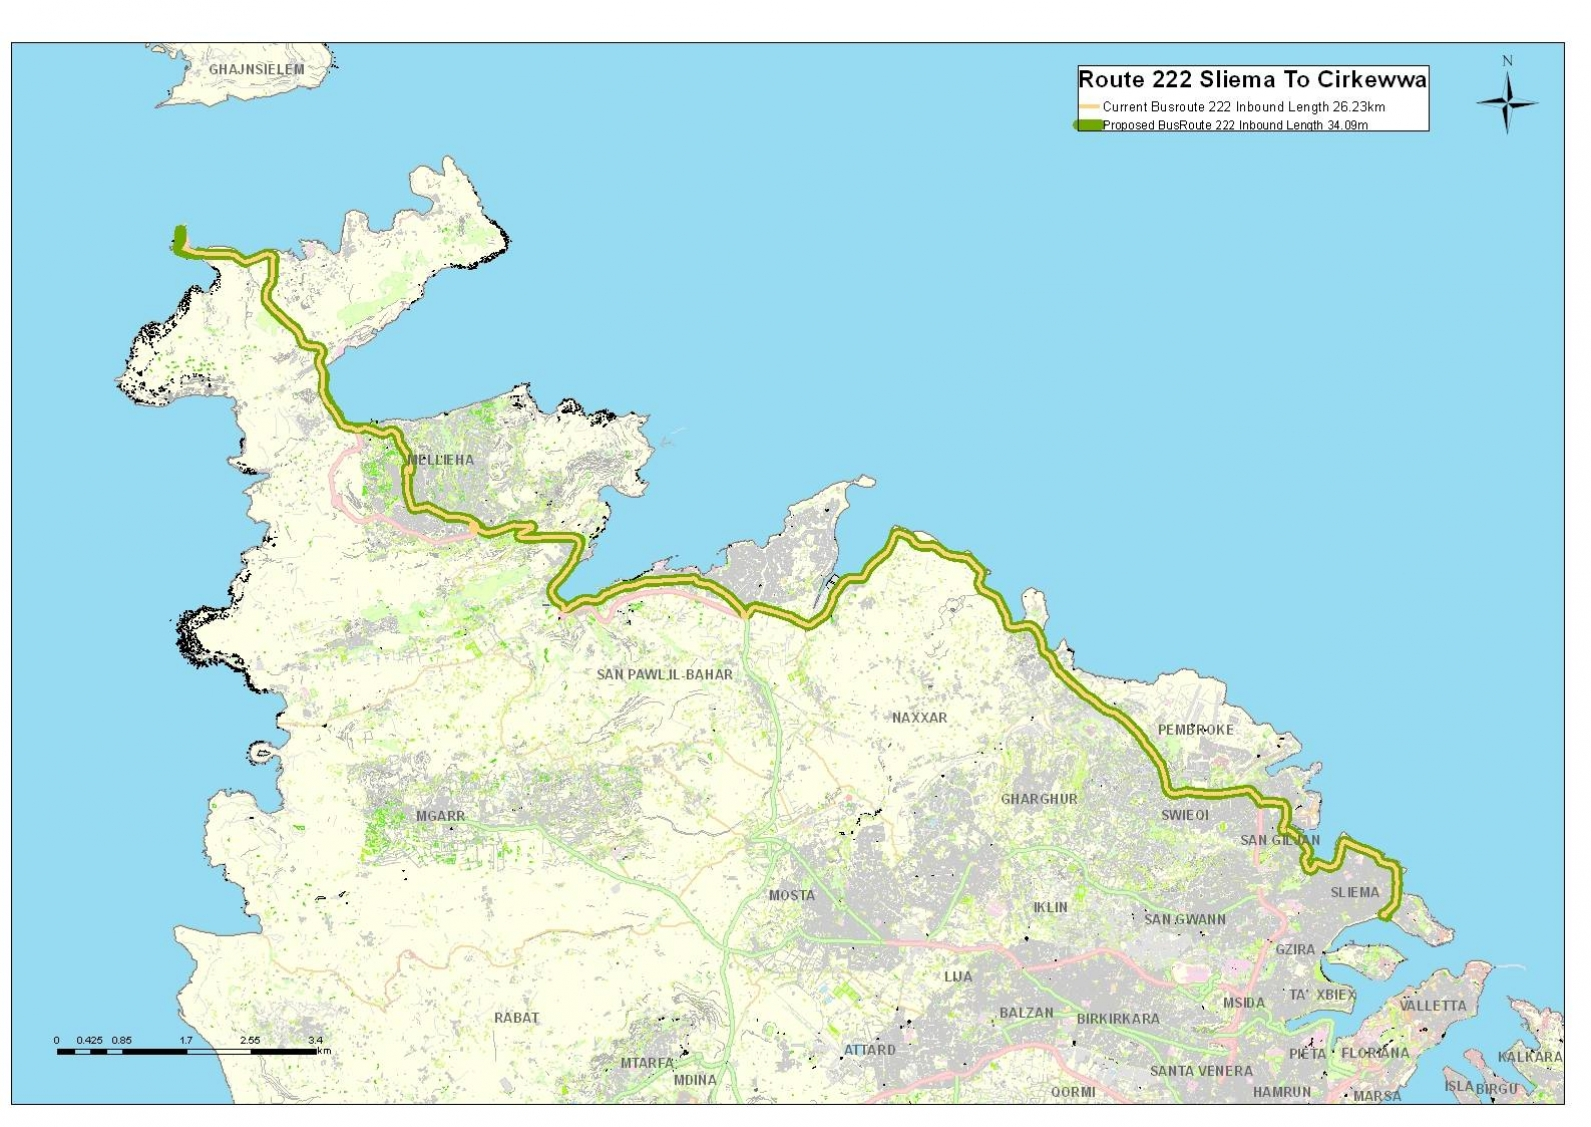 Land-current-network-routes-and-schedules-Cirkewwa-mellieha-sliema-11